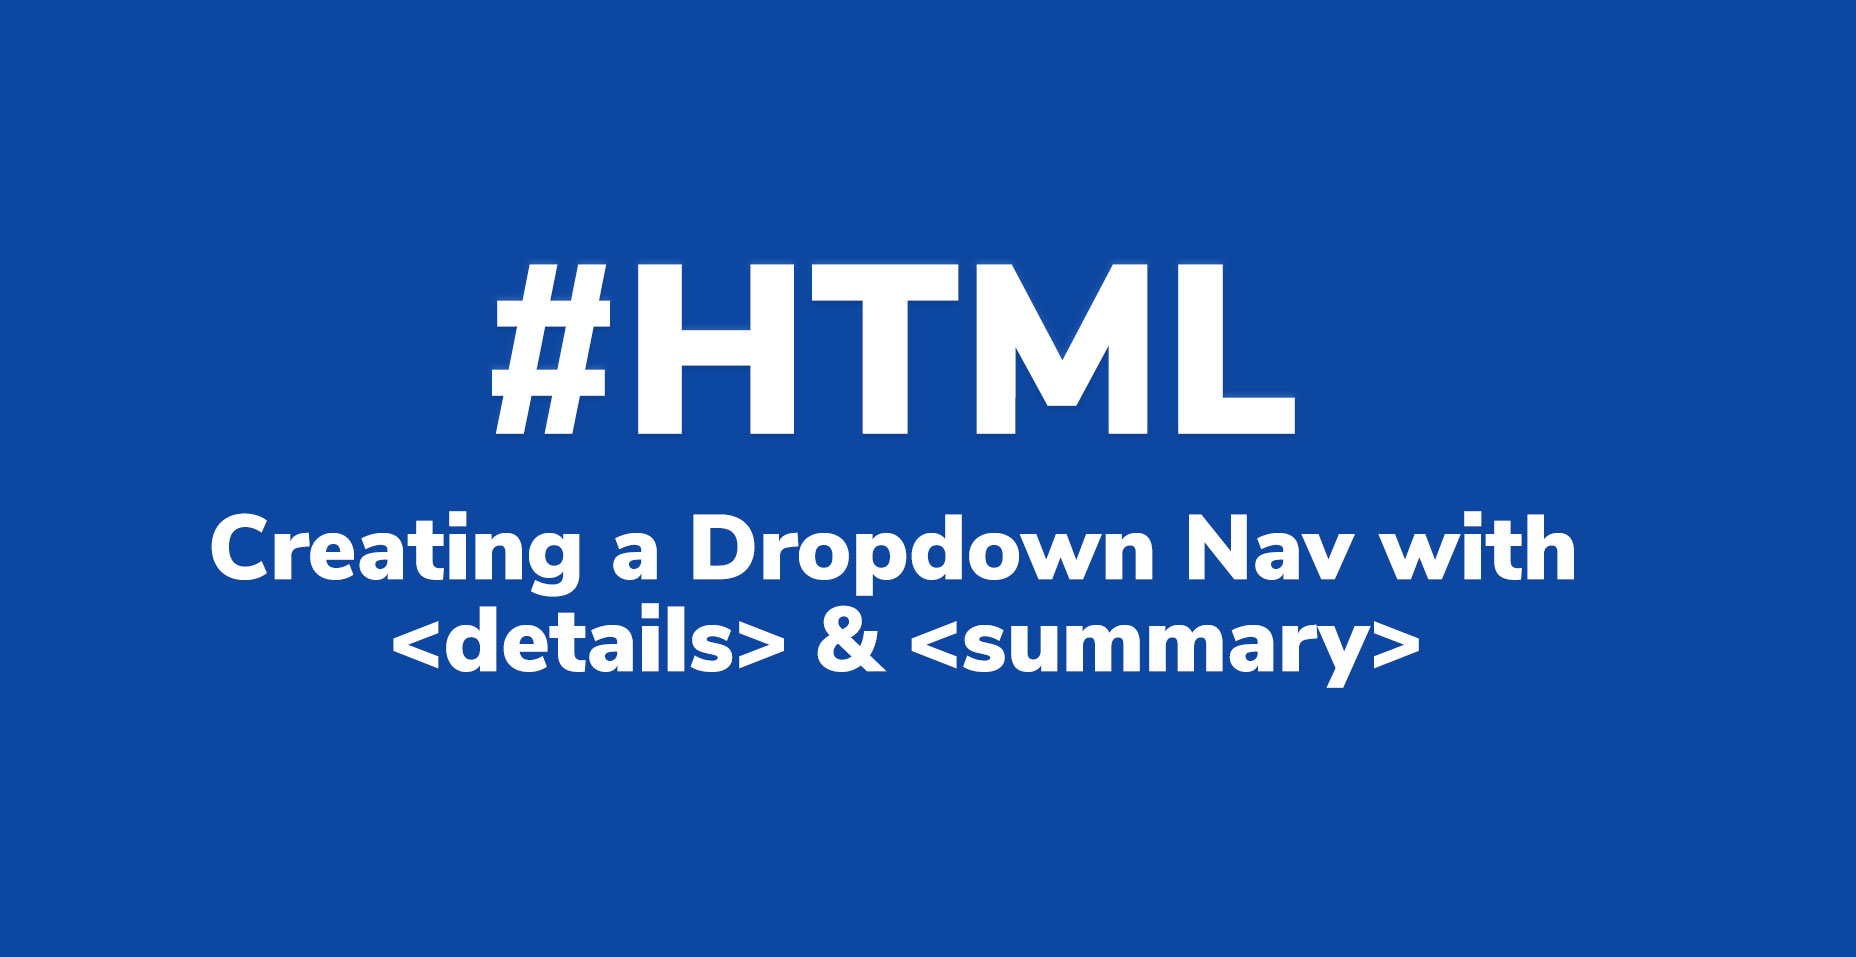 how to create dropdown nav with details & summary html tags